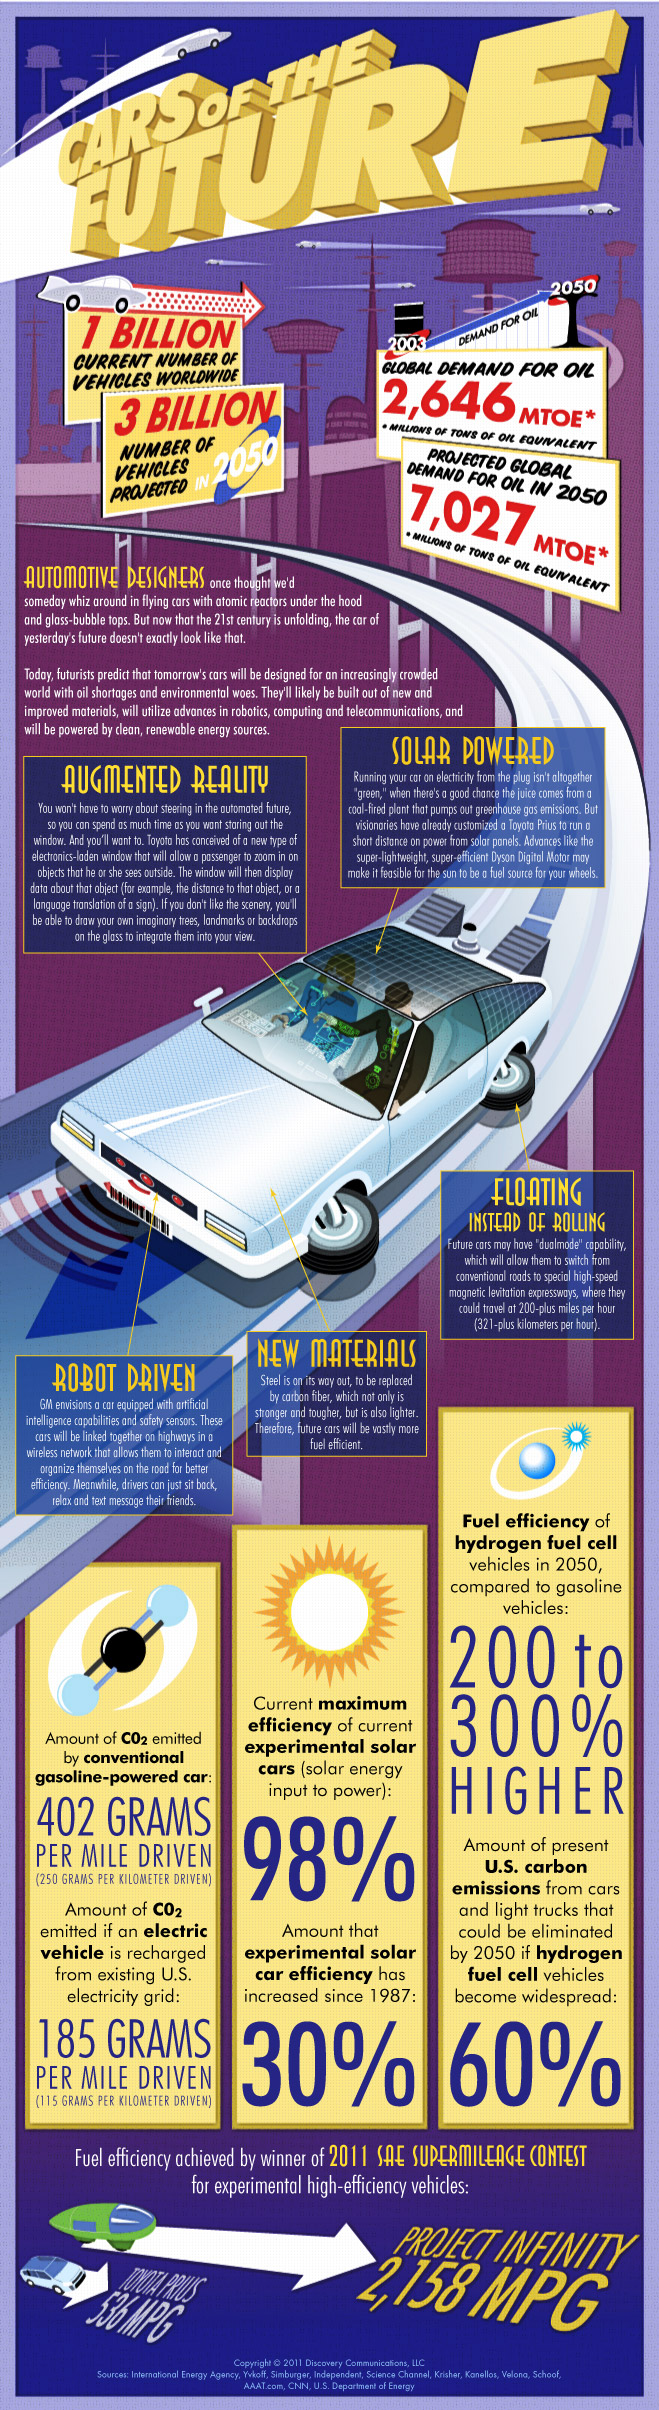 Cars Of The Future [INFOGRAPHIC] – Infographic List